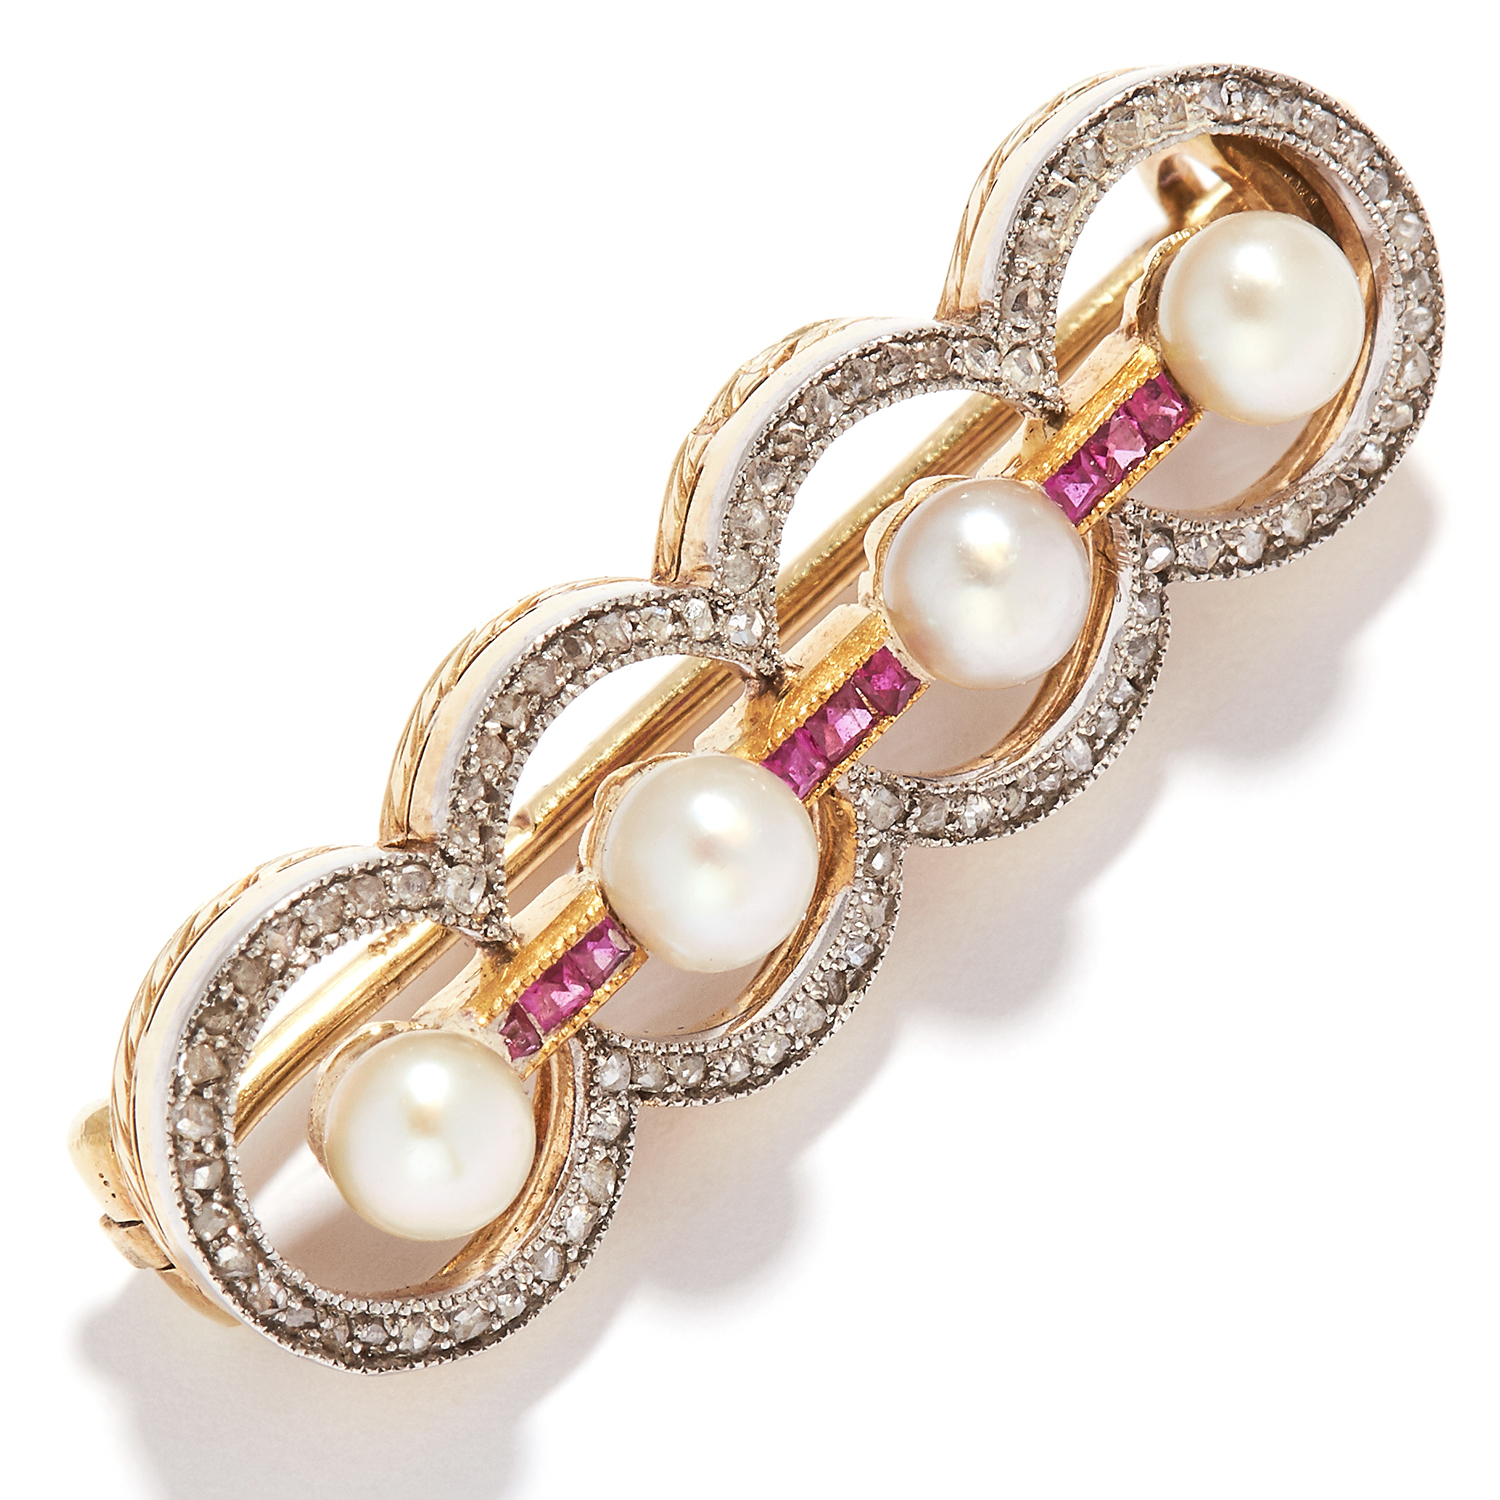 ANTIQUE IMPERIAL RUSSIAN PEARL, RUBY AND DIAMOND BROOCH, CIRCA 1910 in 56 zolotnik gold, set with